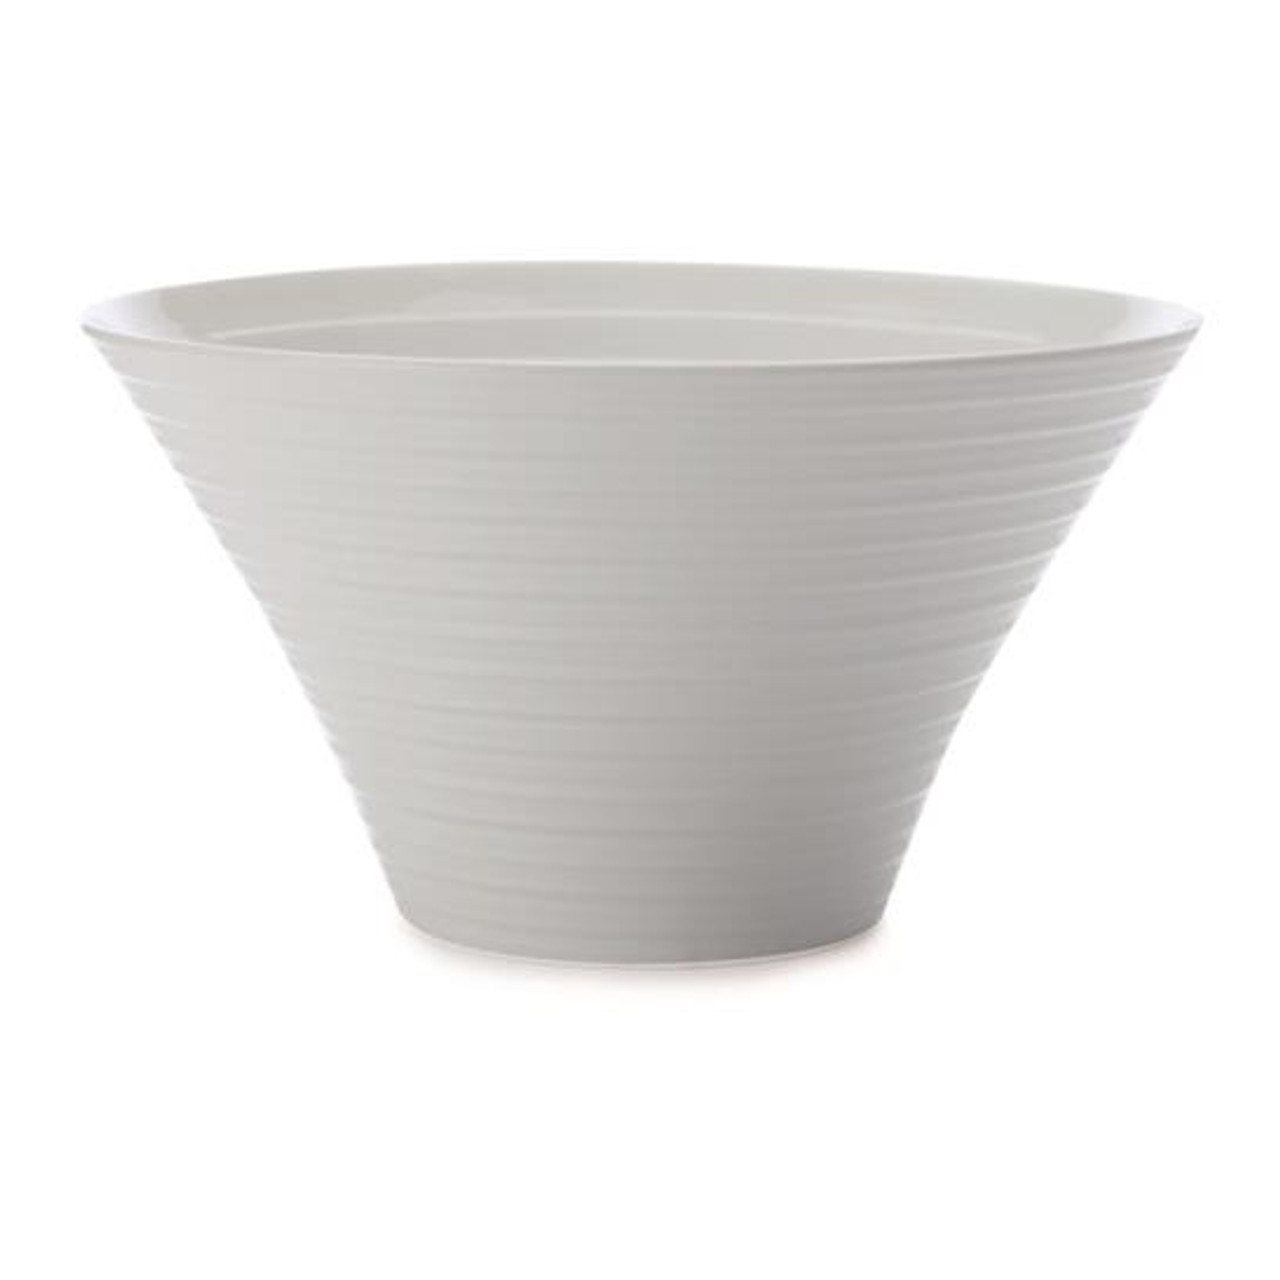 CONICAL BOWL - CIRQUE 24CM